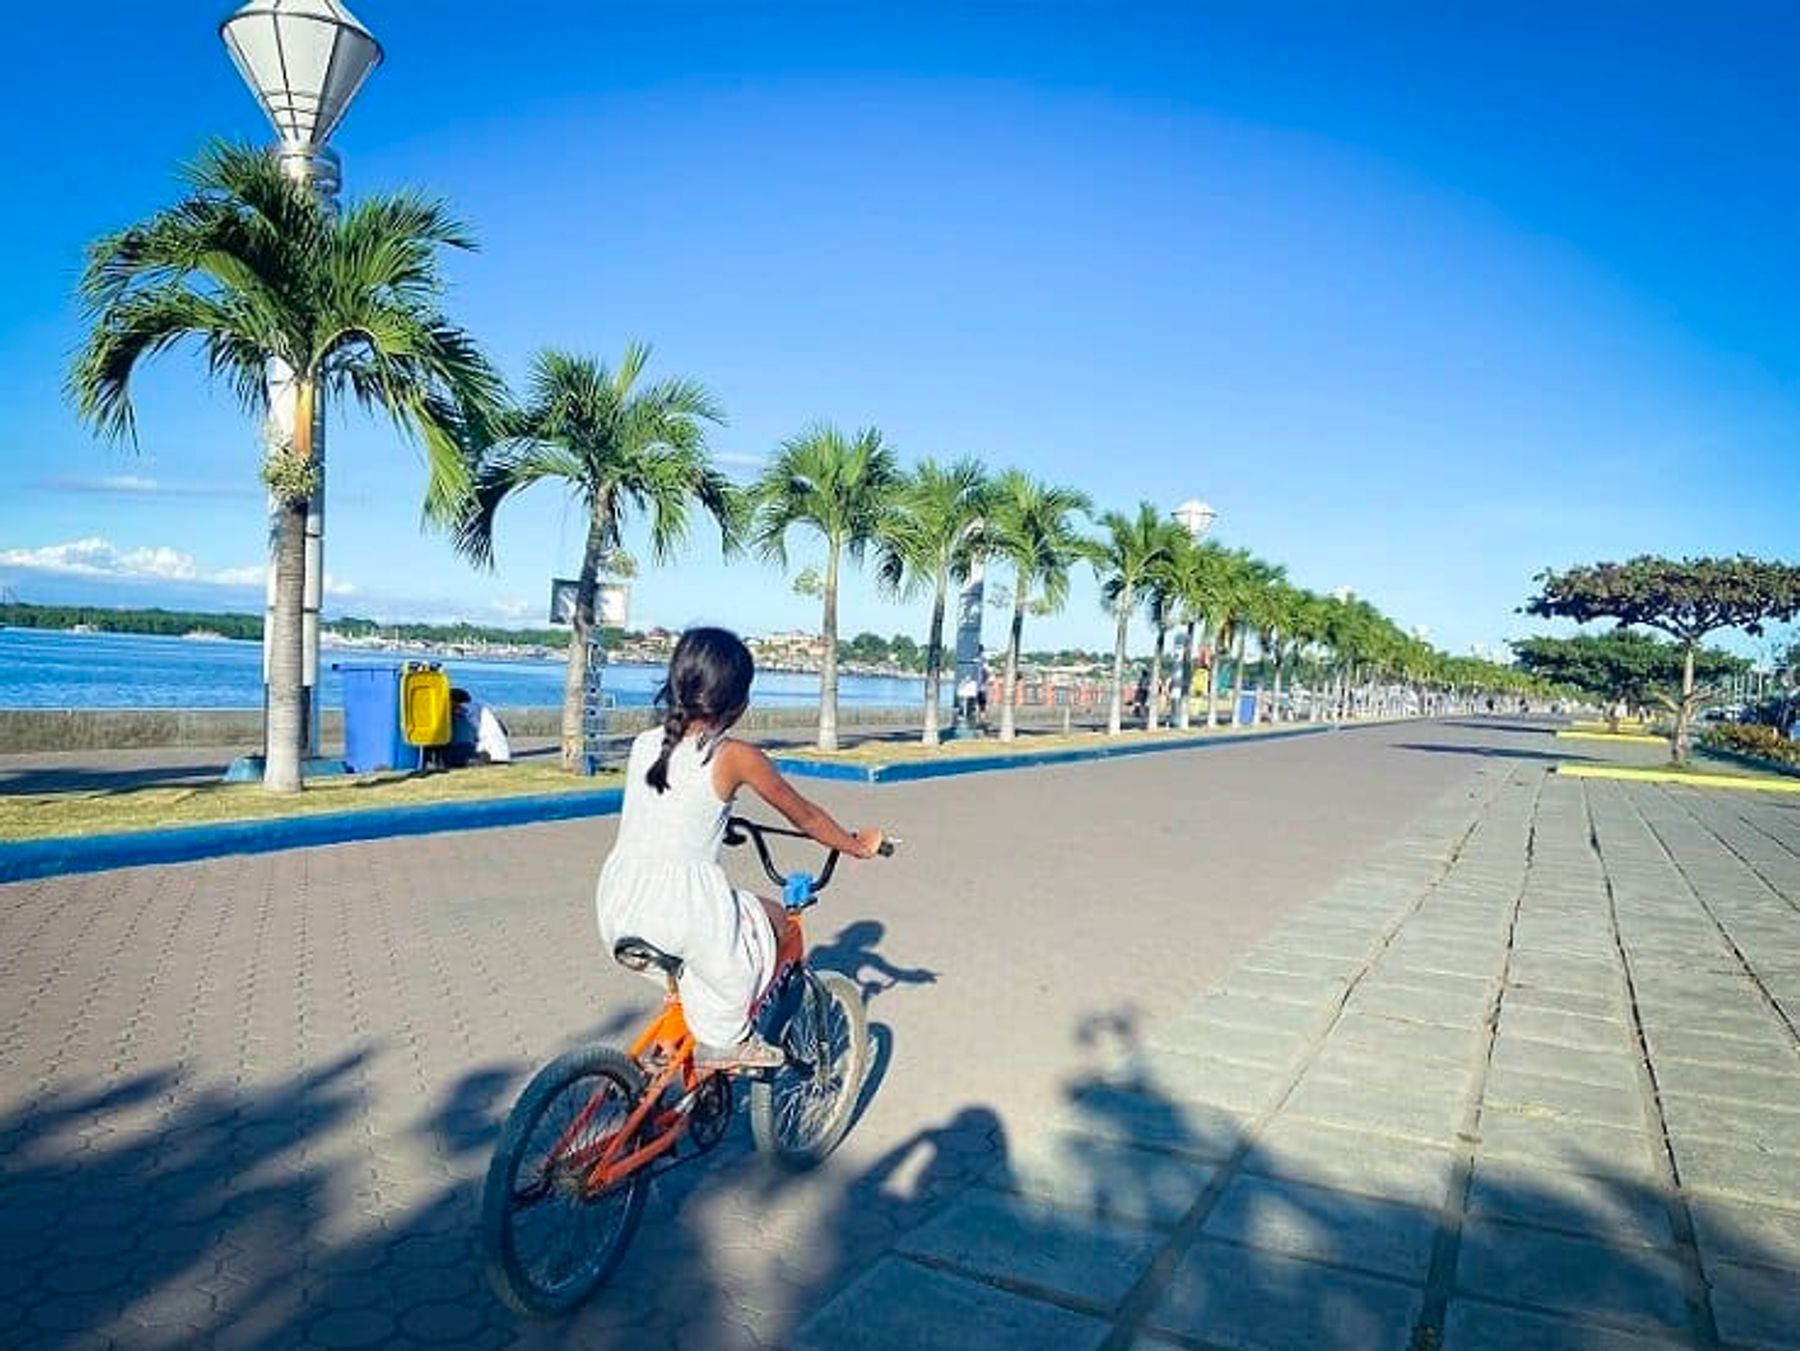 Riding Bicycles in Puerto Princes, Philippines (February 2020)